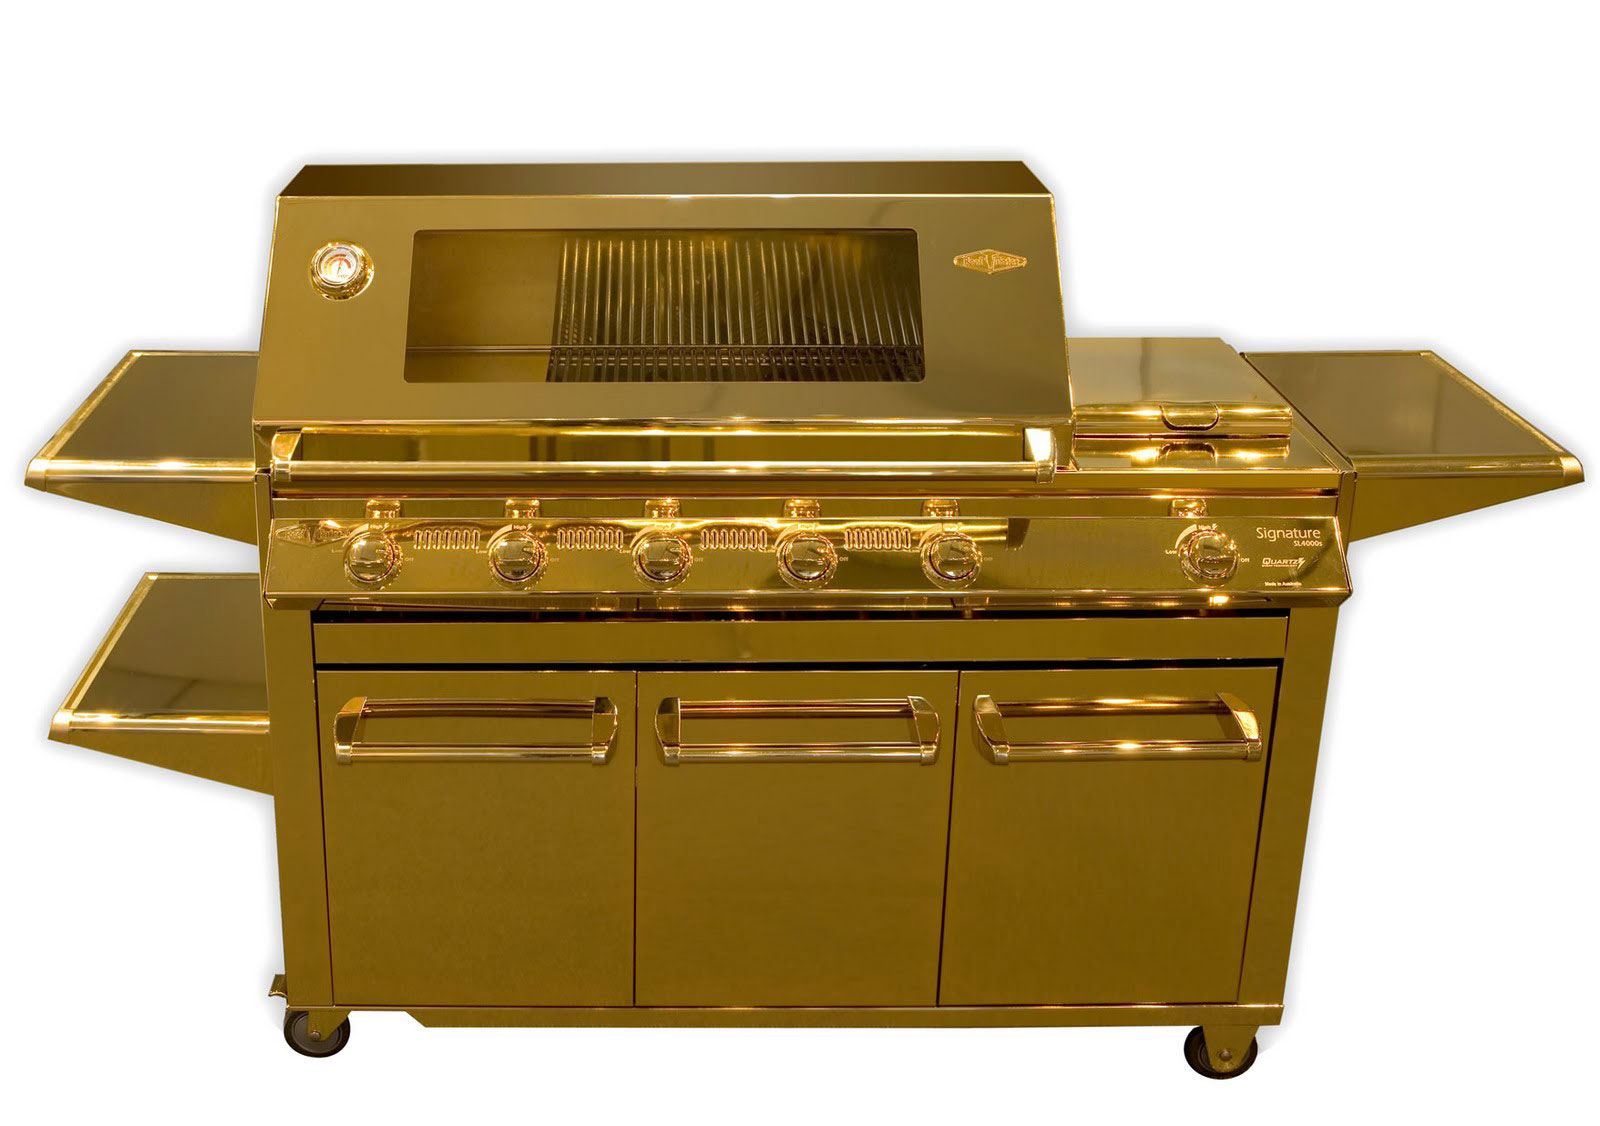 Beefeater carat gold plated barbecue extravaganzi